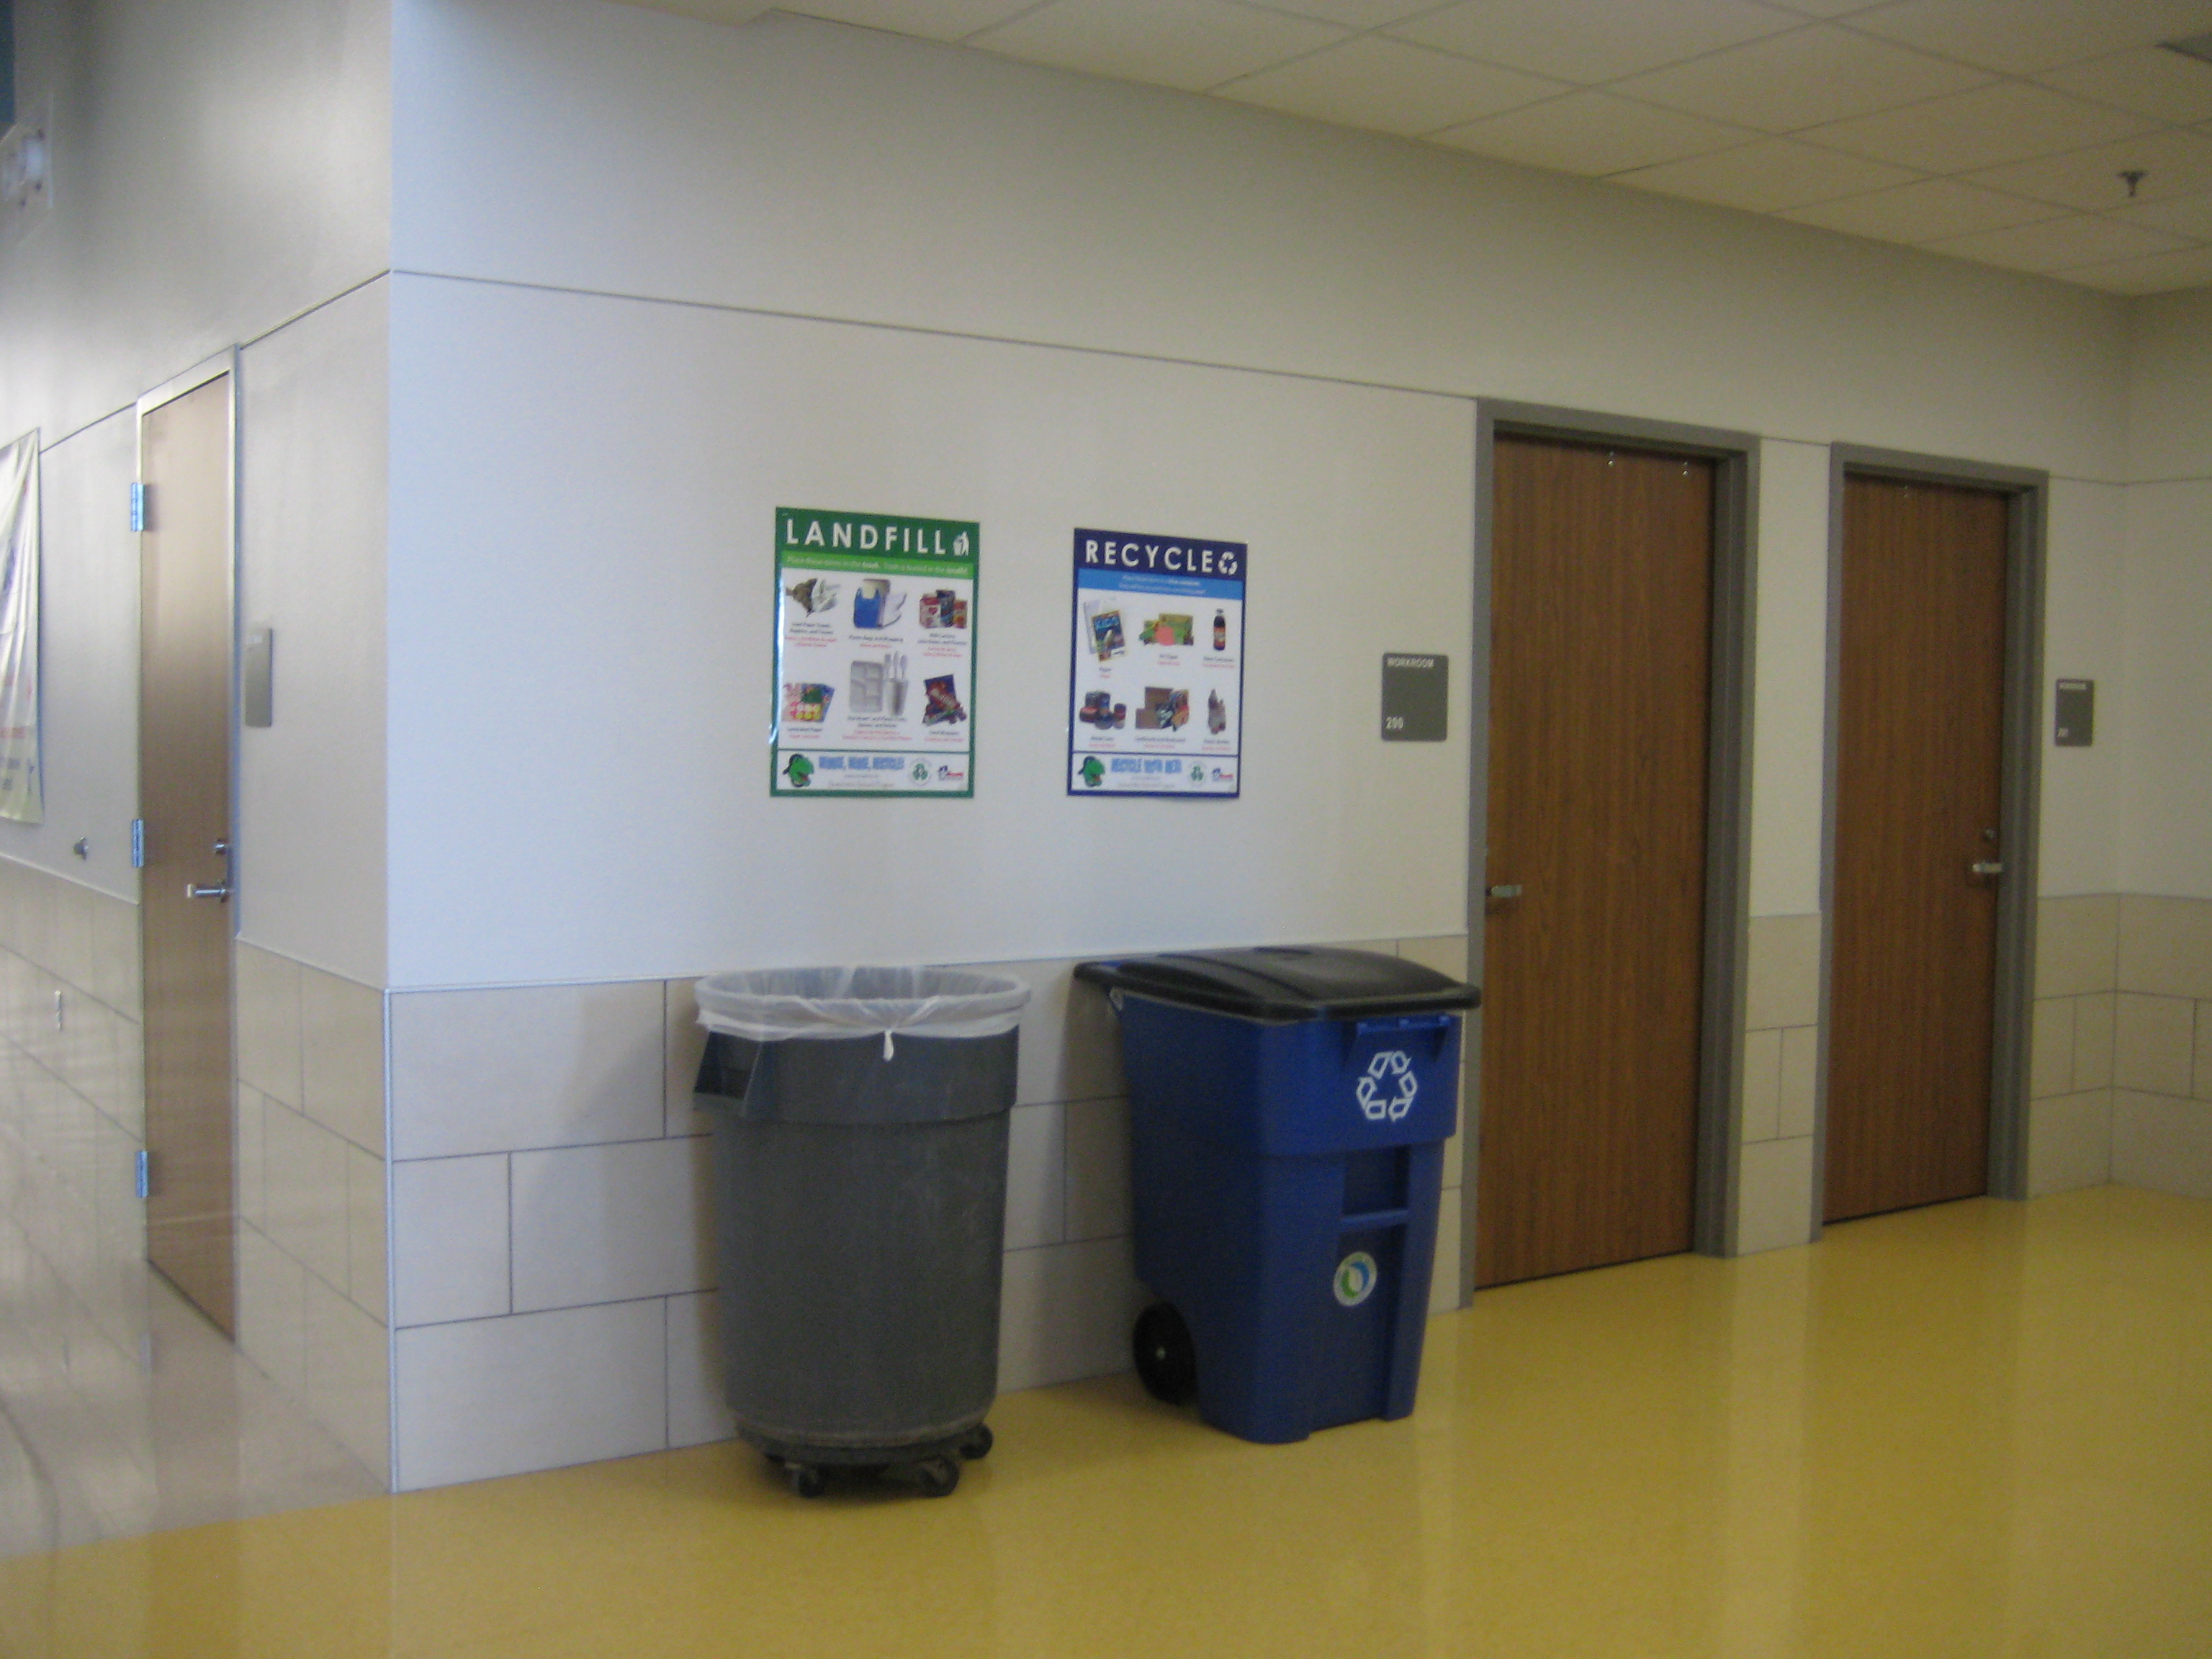 Recycling bins 021